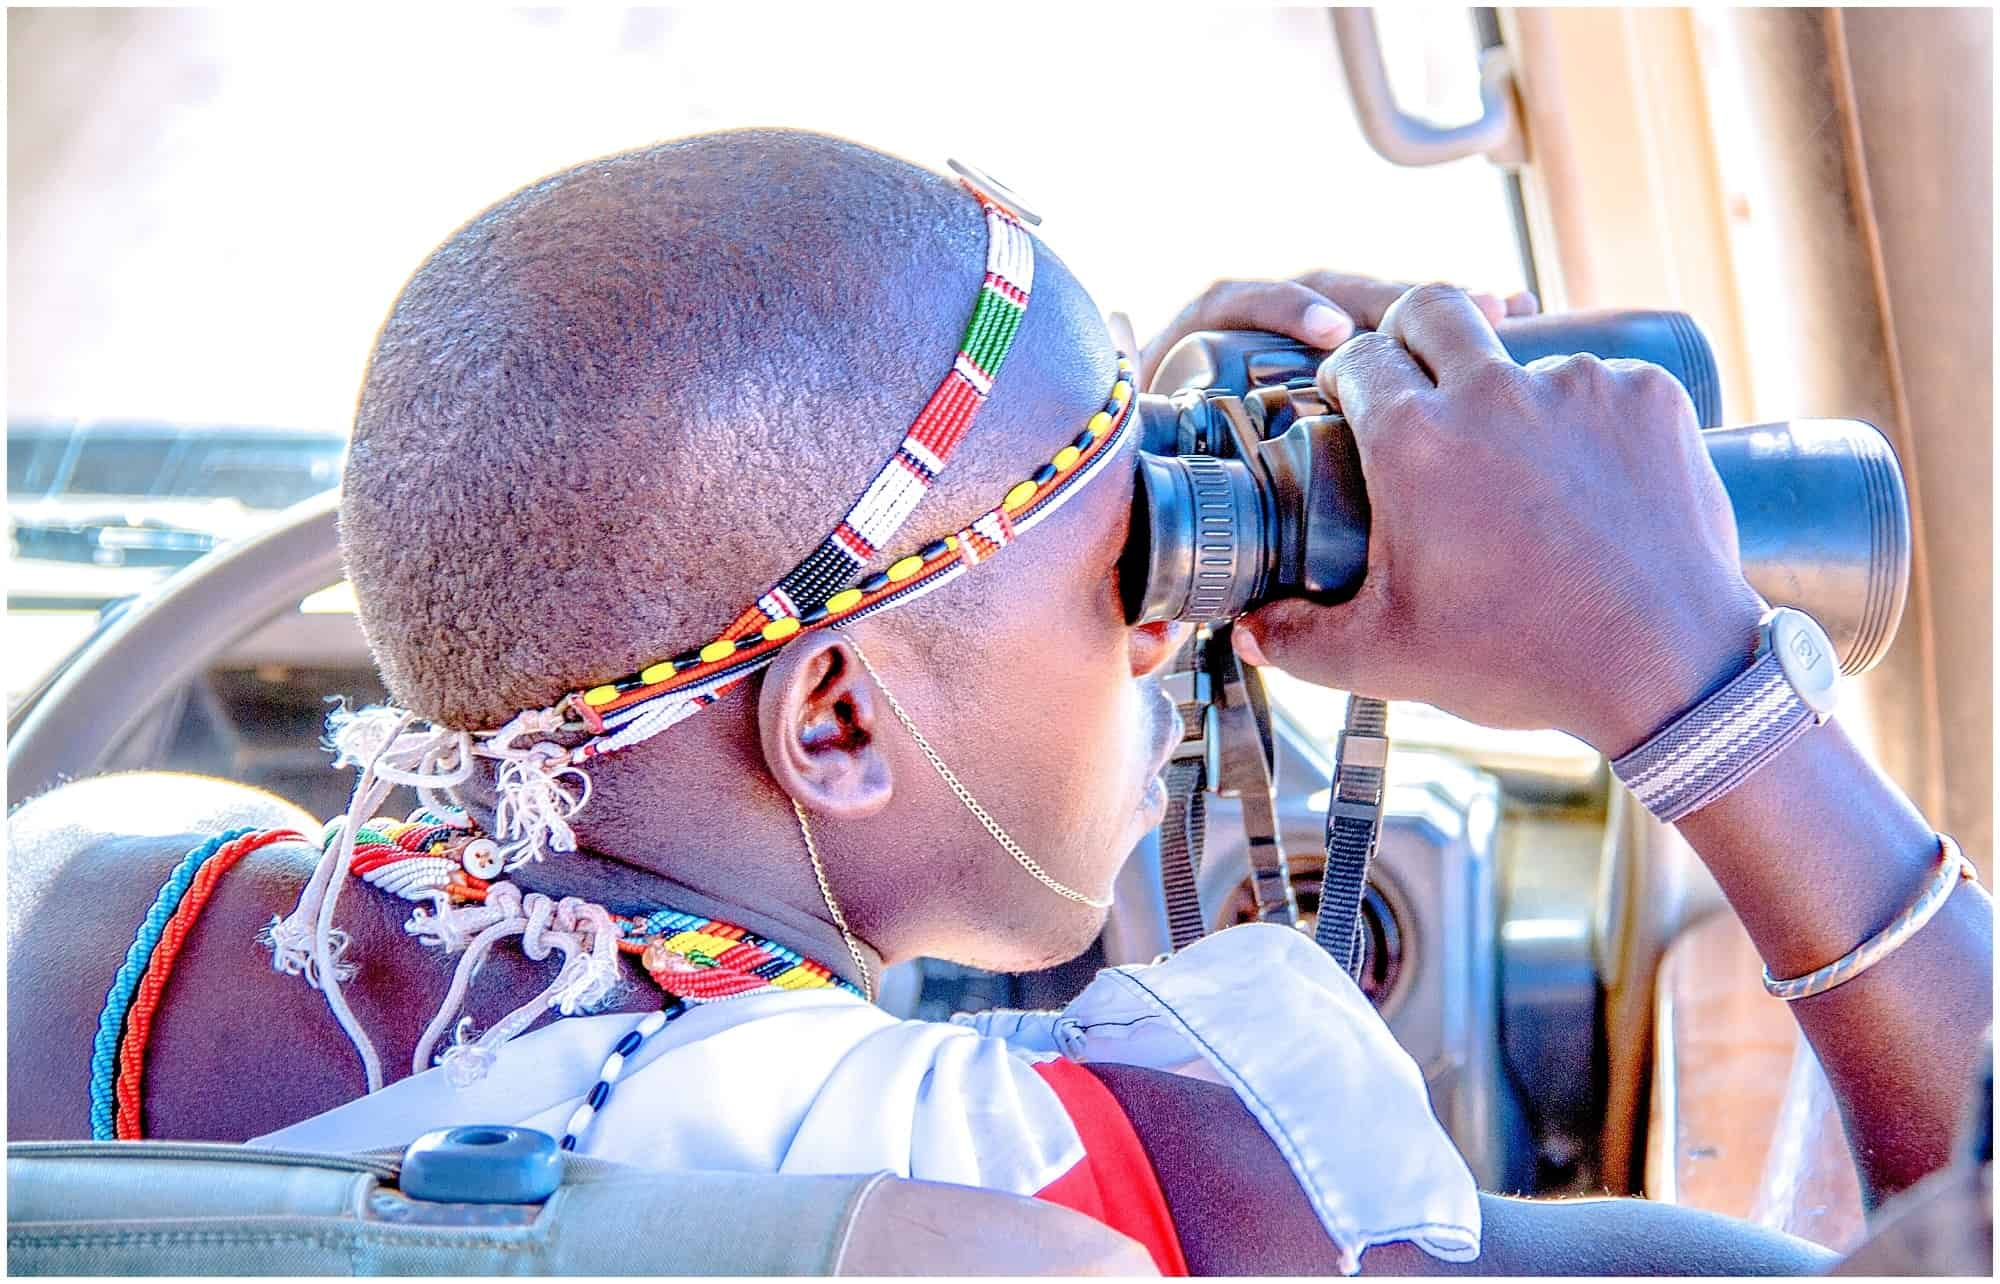 Safari guide in Kenya looking through binoculars